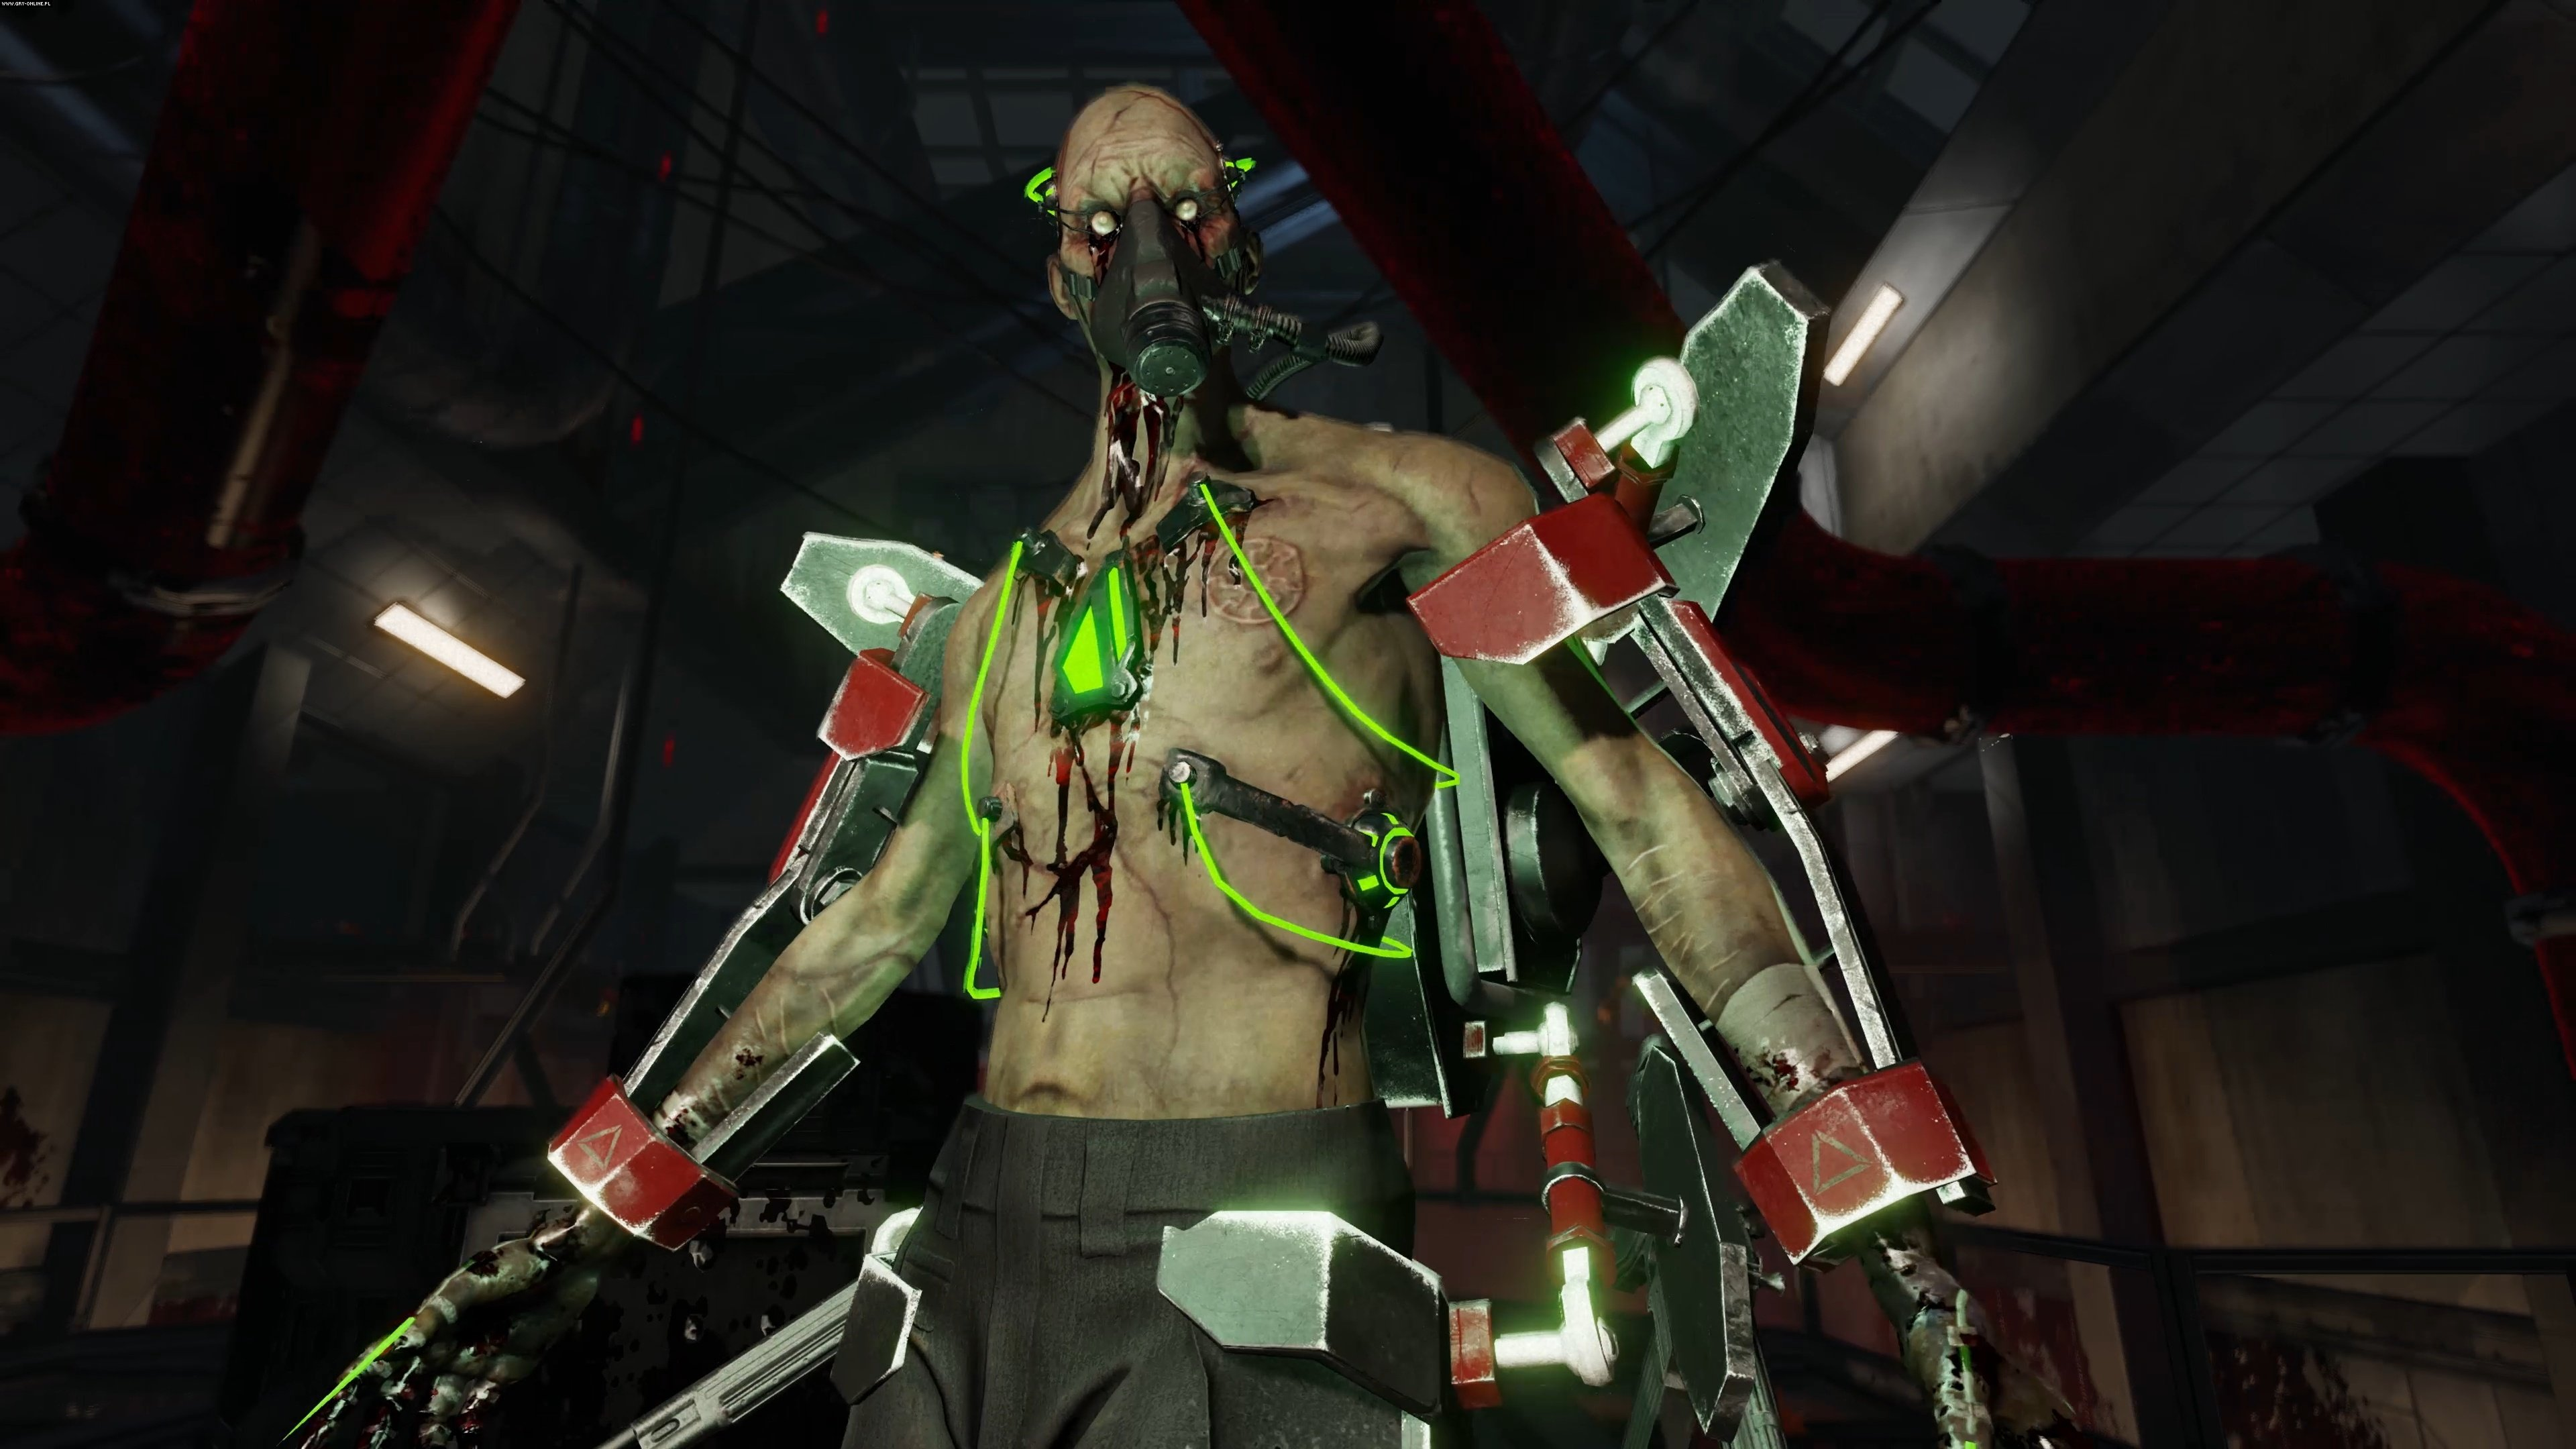 Killing Floor 2 PC, PS4, XONE Gry Screen 17/174, Tripwire Interactive